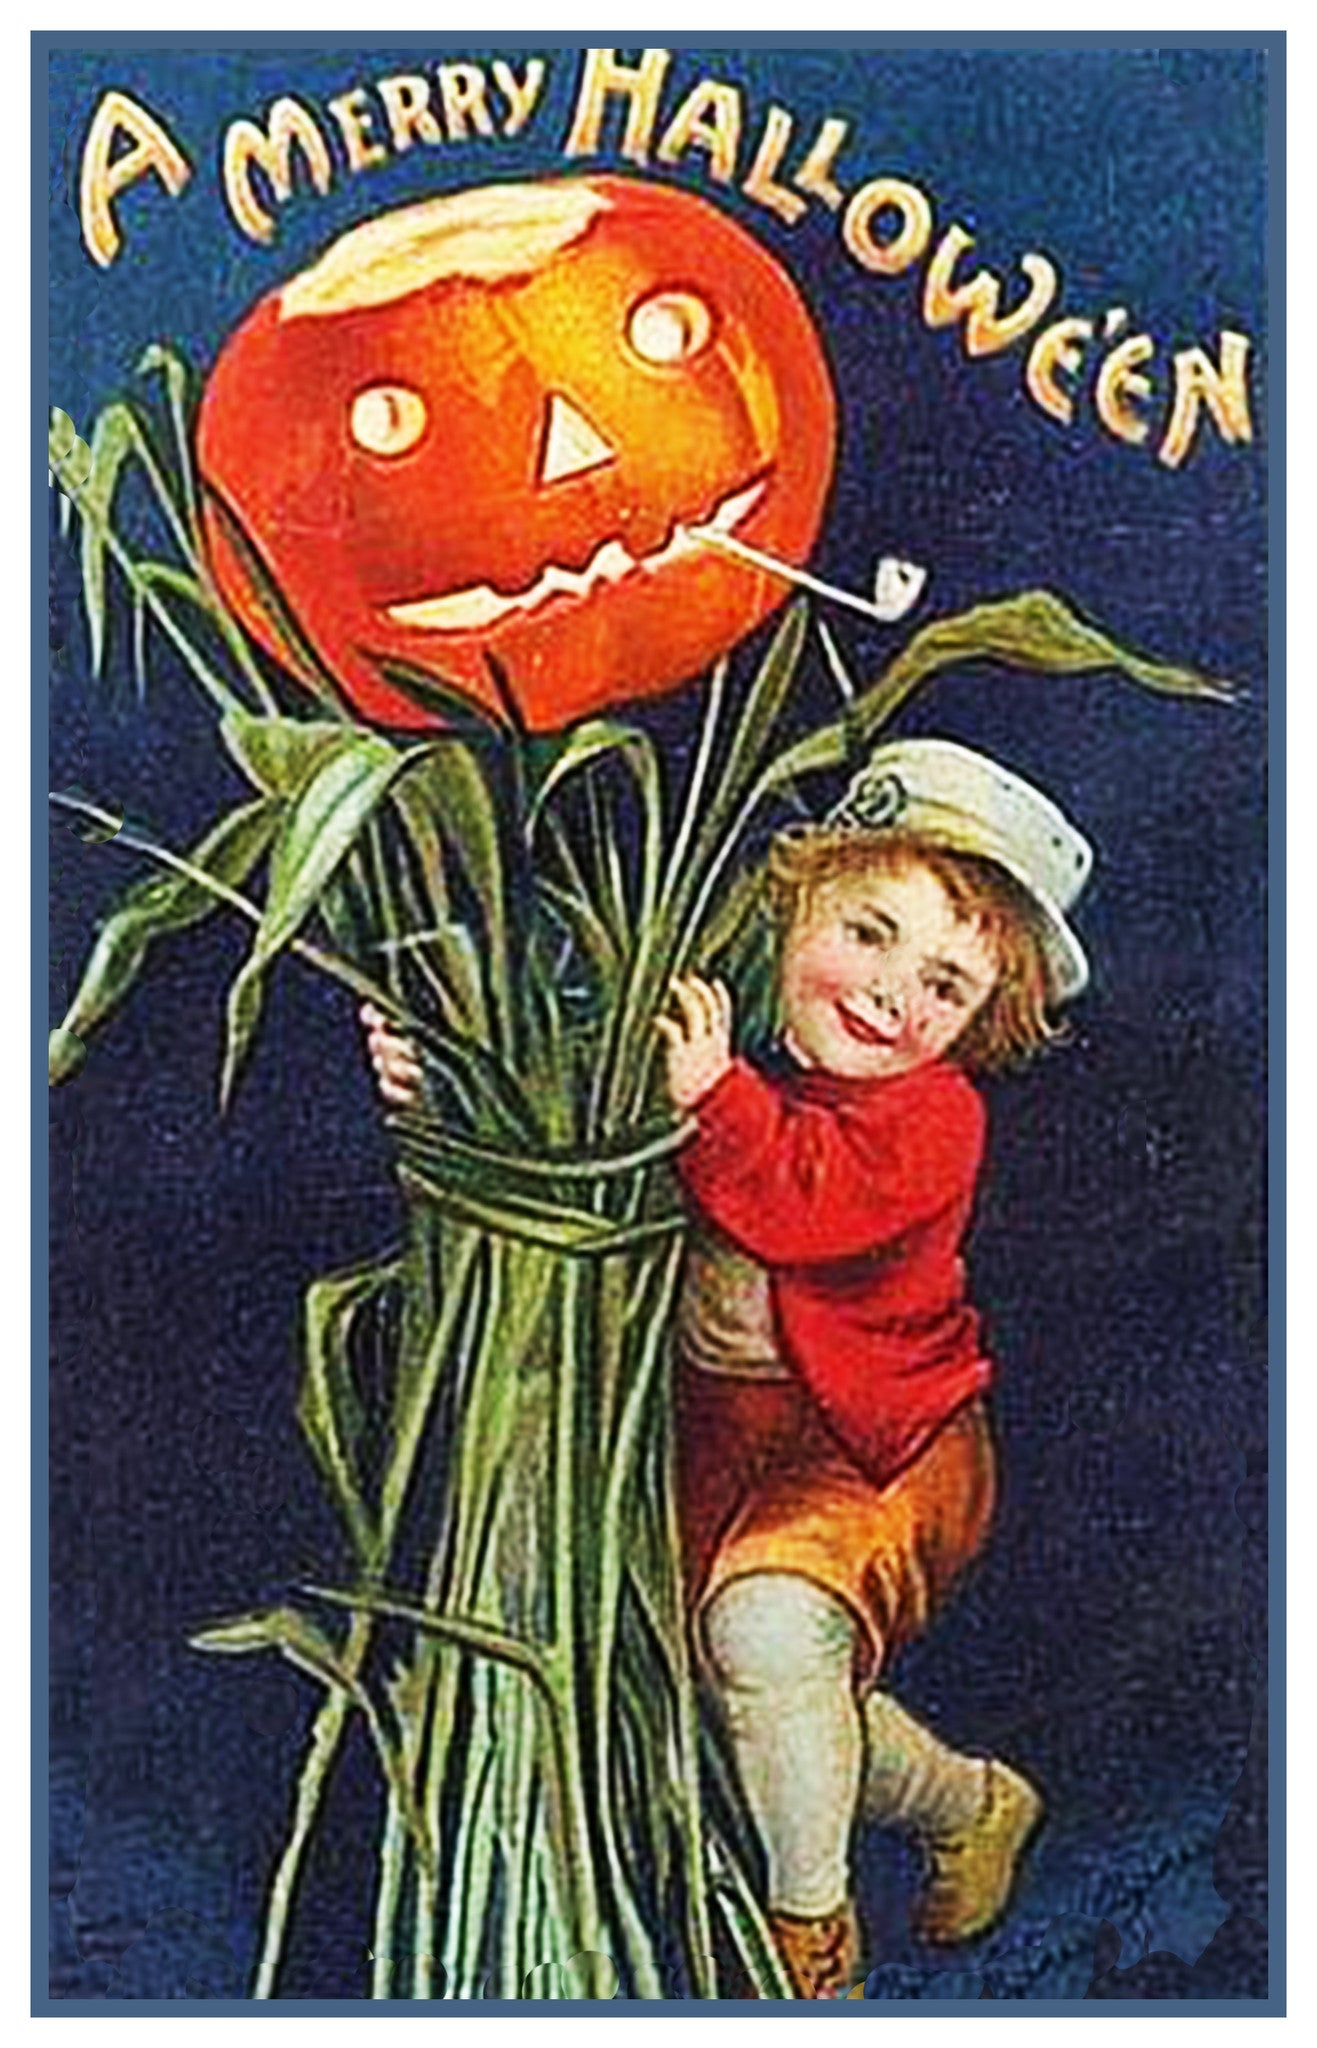 halloween boy and corn stalks pumpkin counted cross stitch or counted needlepoint pattern - Halloween Corn Stalks